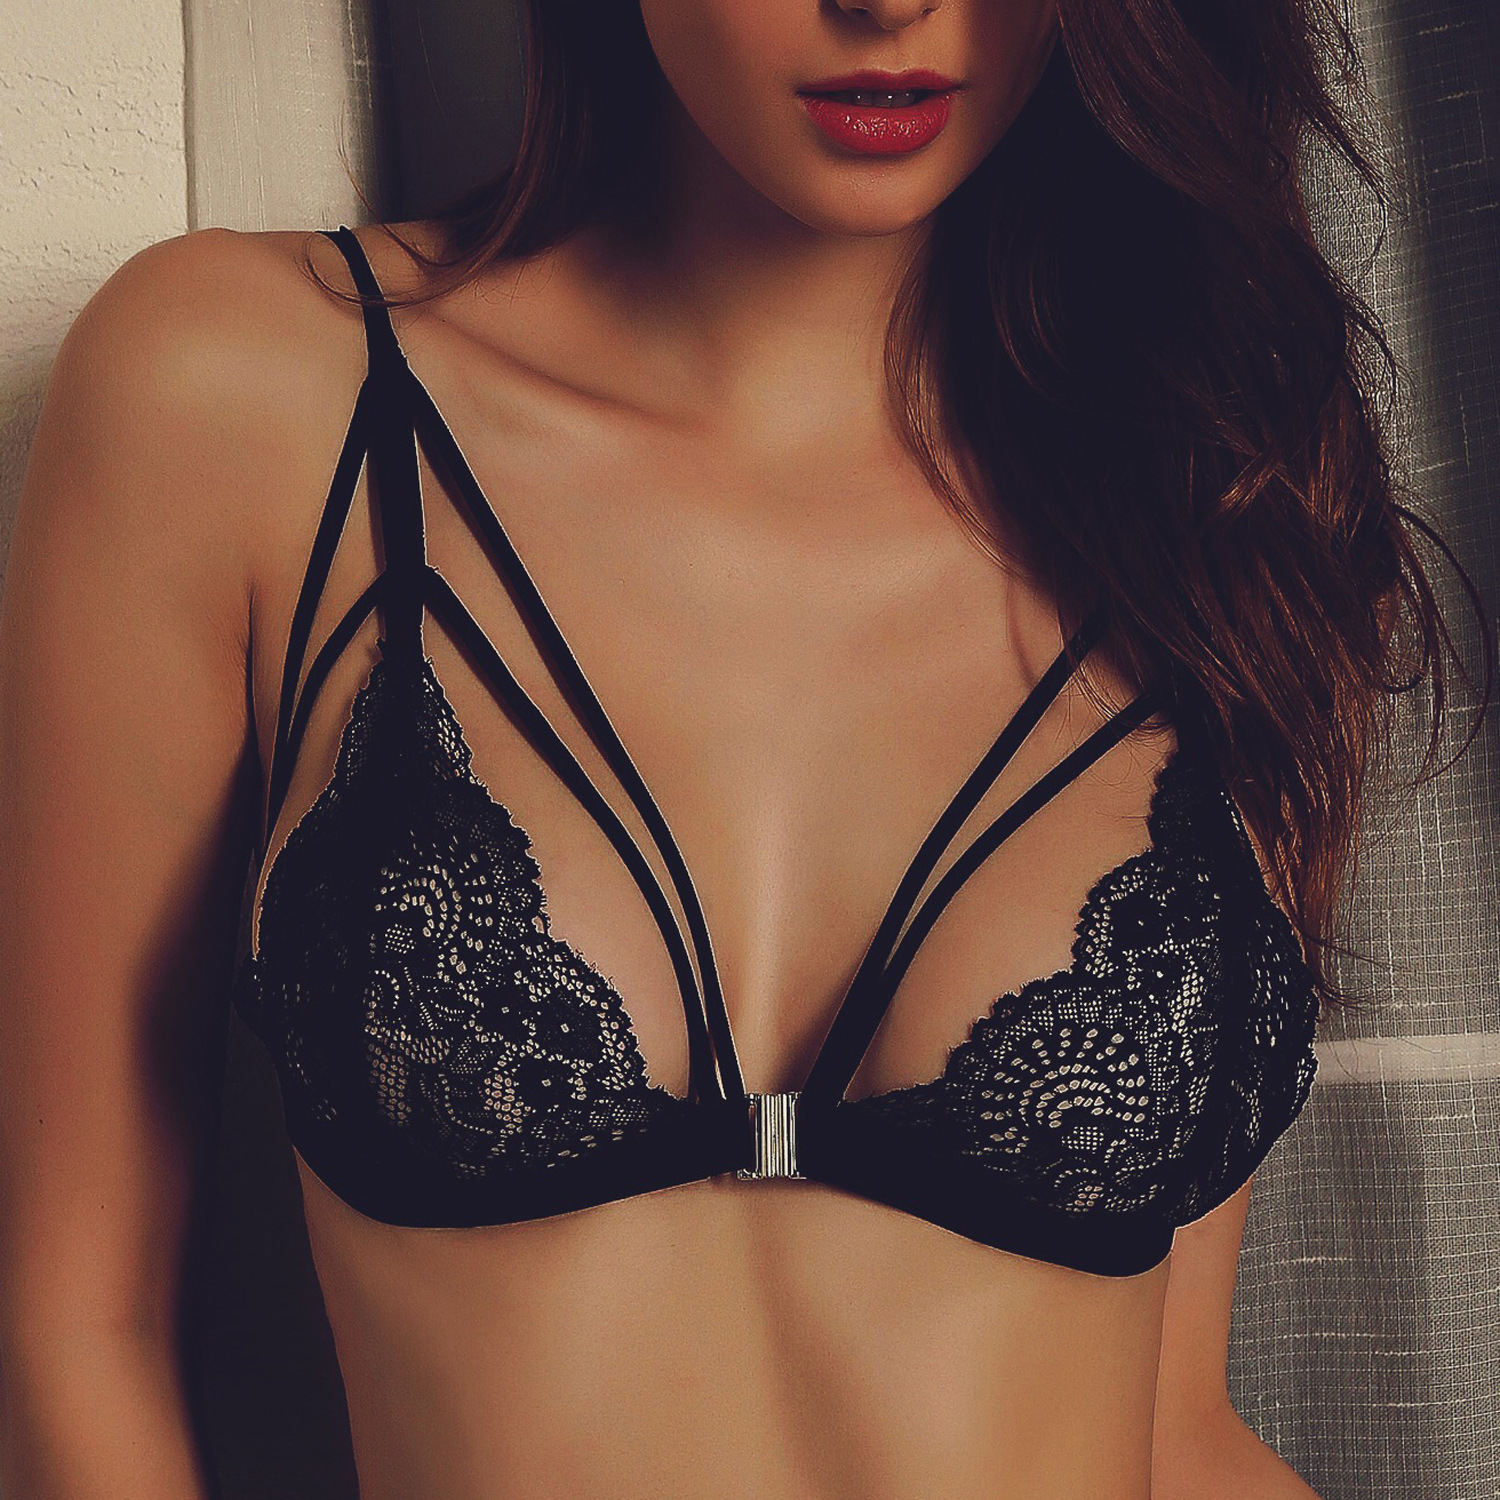 ae60b0a407d Women Hollow Out Translucent Underwear Bras Wrapped Chest Sheer Lace  Bralette Vest Strap Sexy Lingerie Cross Halter Push Up